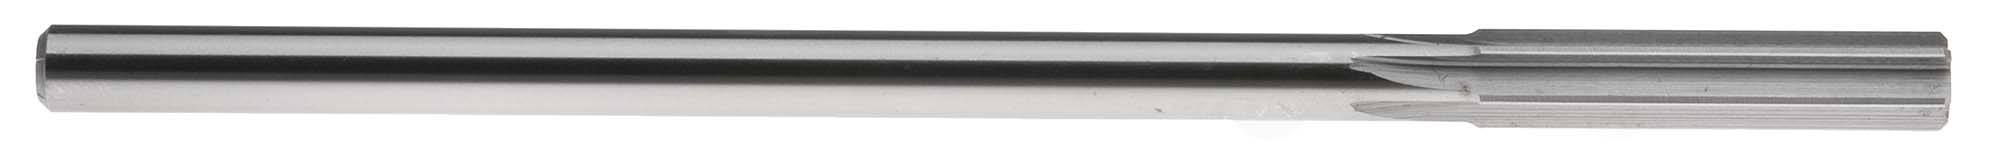 "1/64"" Straight Shank Chucking Reamer, Straight Flute, High Speed Steel"